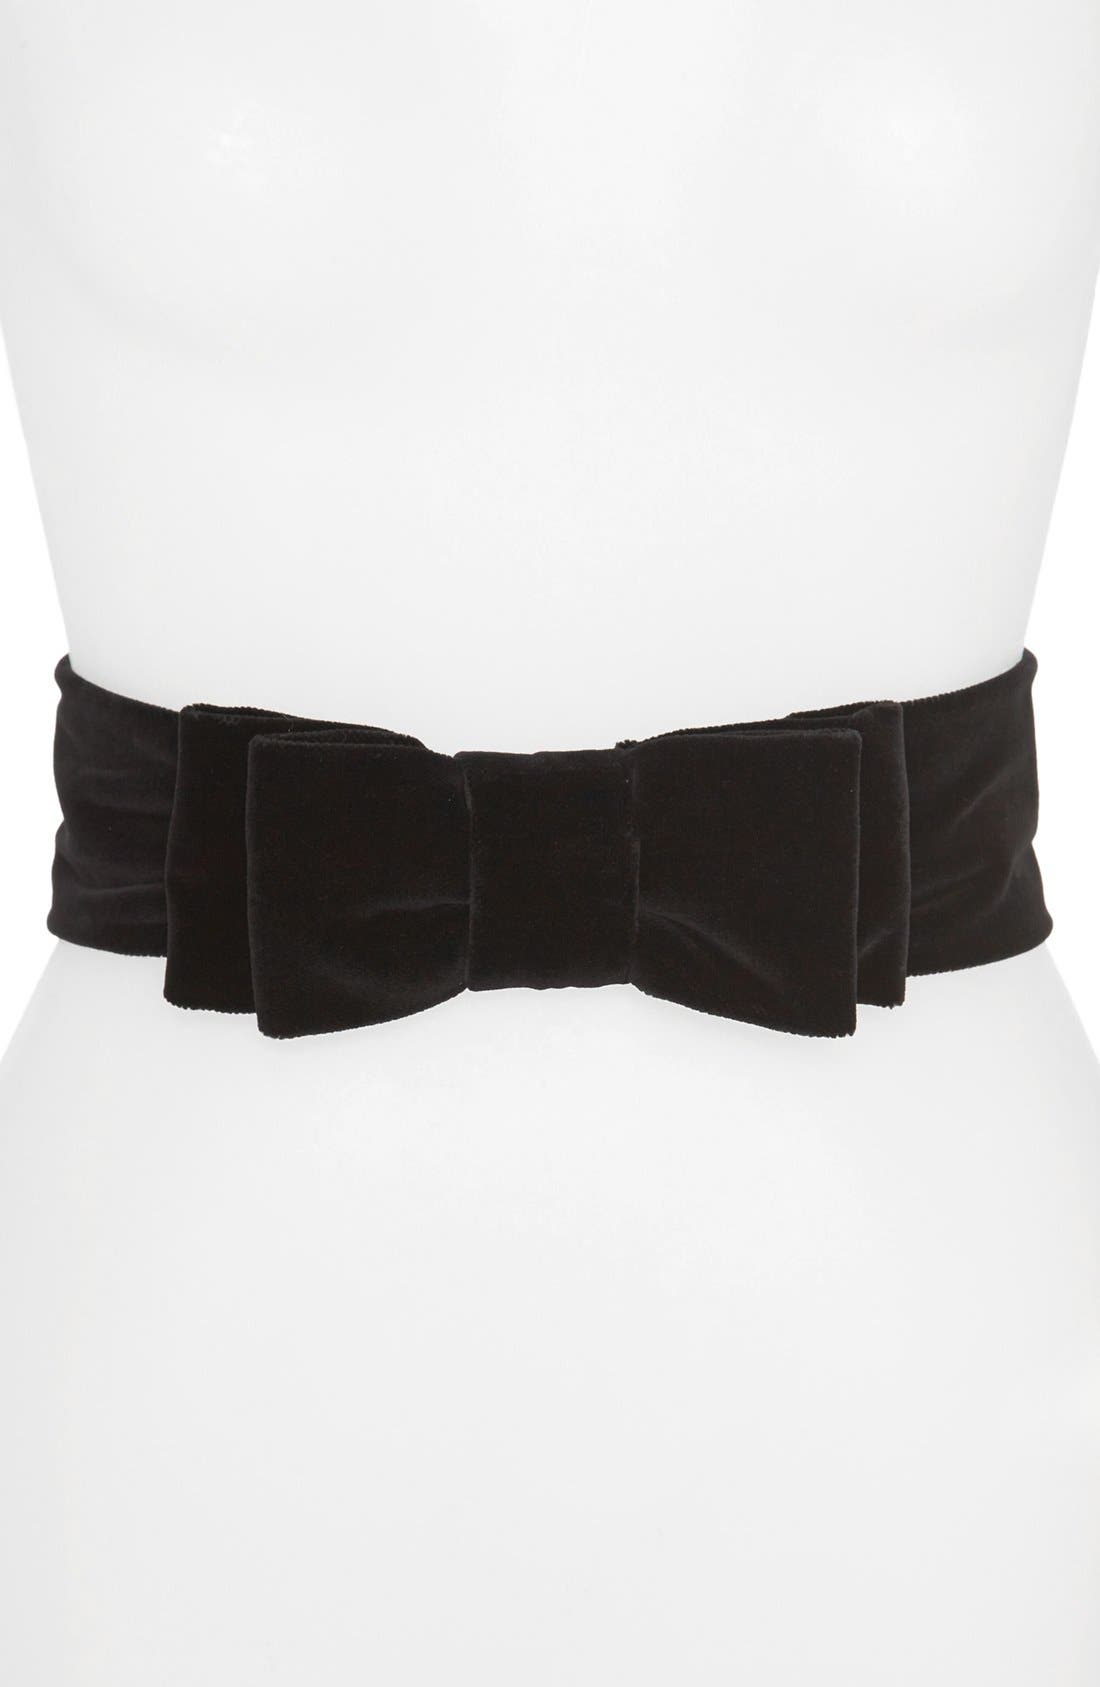 Main Image - kate spade new york 'velvet double bow' belt